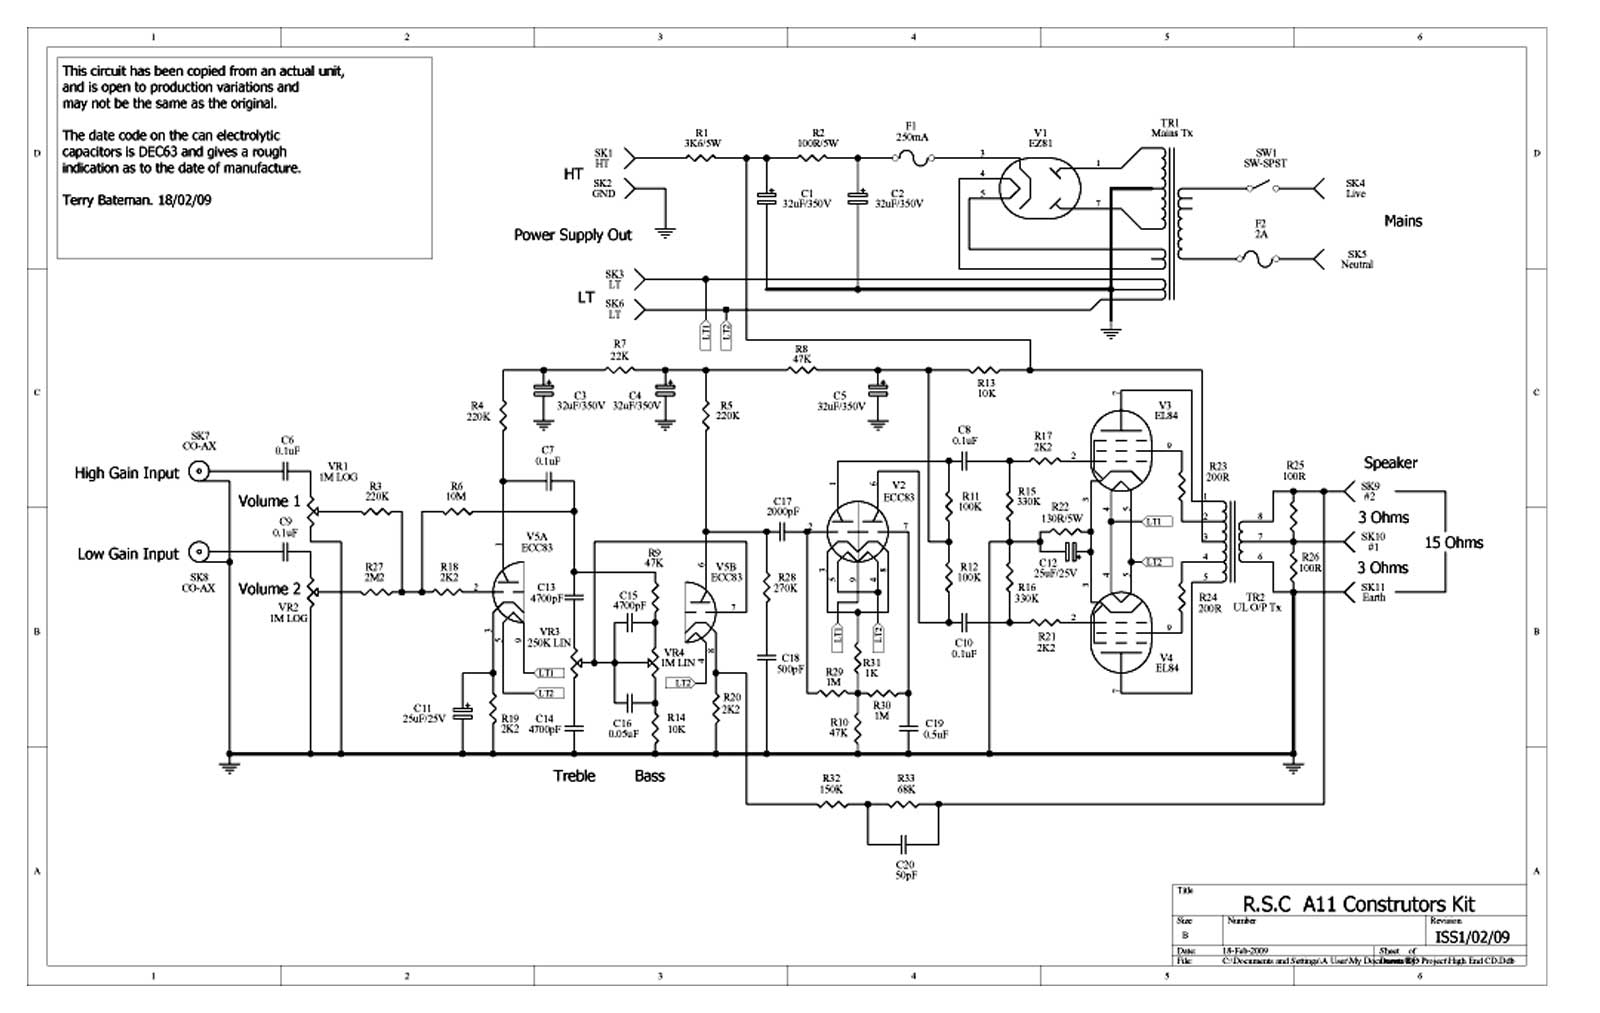 bomag wiring diagram bomag wiring diagram bomag automotive wiring diagrams description linear rsc a11 bomag wiring diagram